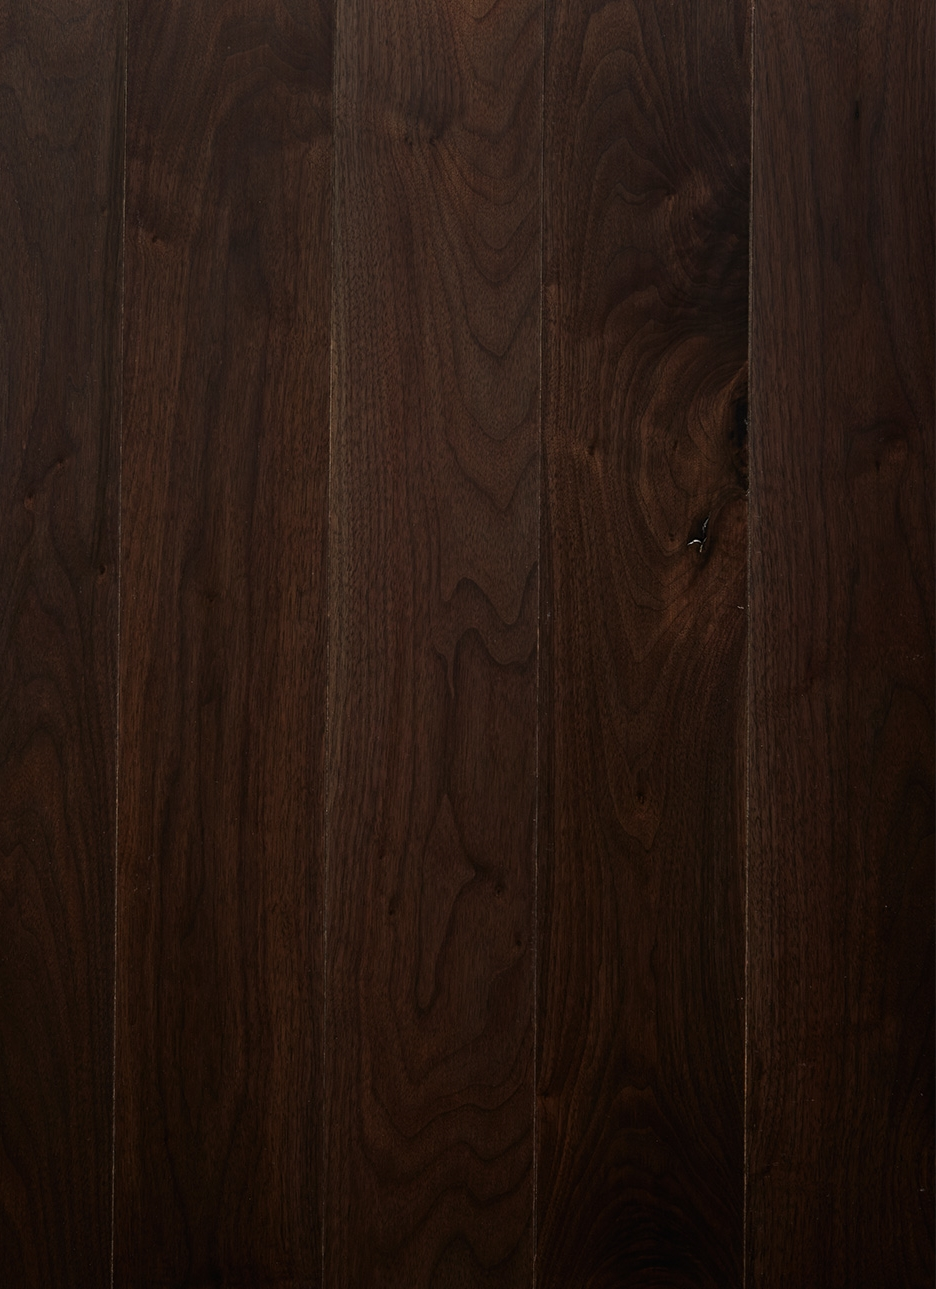 Select Harvest Walnut Hardwood Flooring [Cacao Finish]